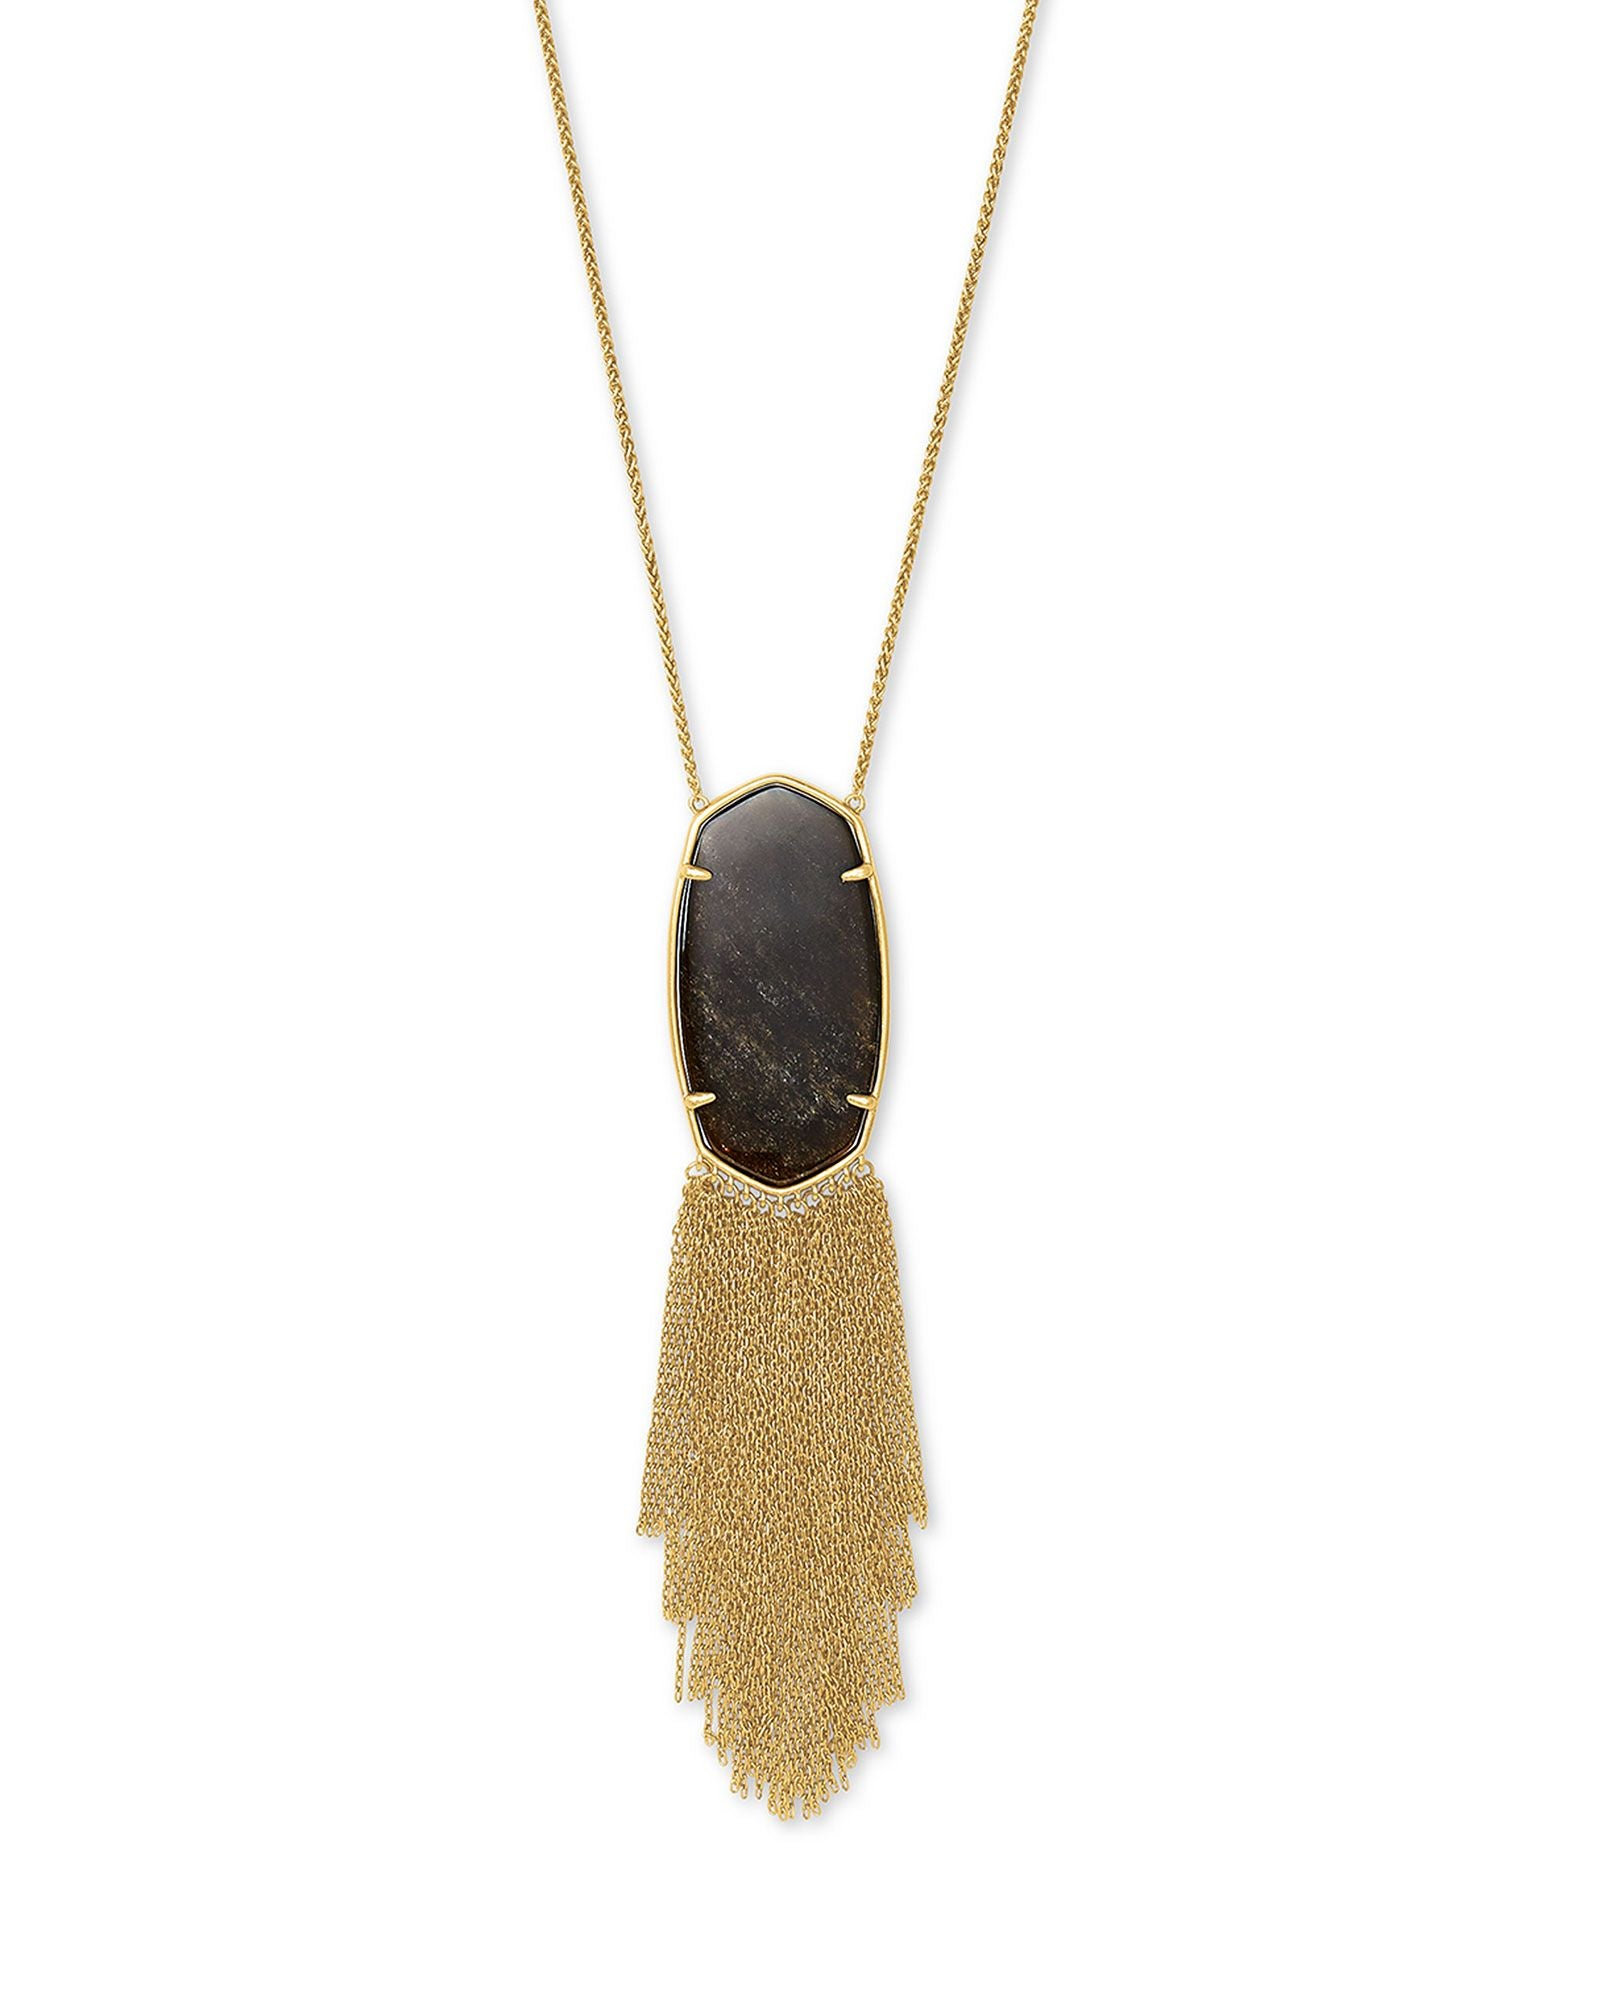 Deanna Long Pendant Necklace in Vintage Gold and Golden Obsidian